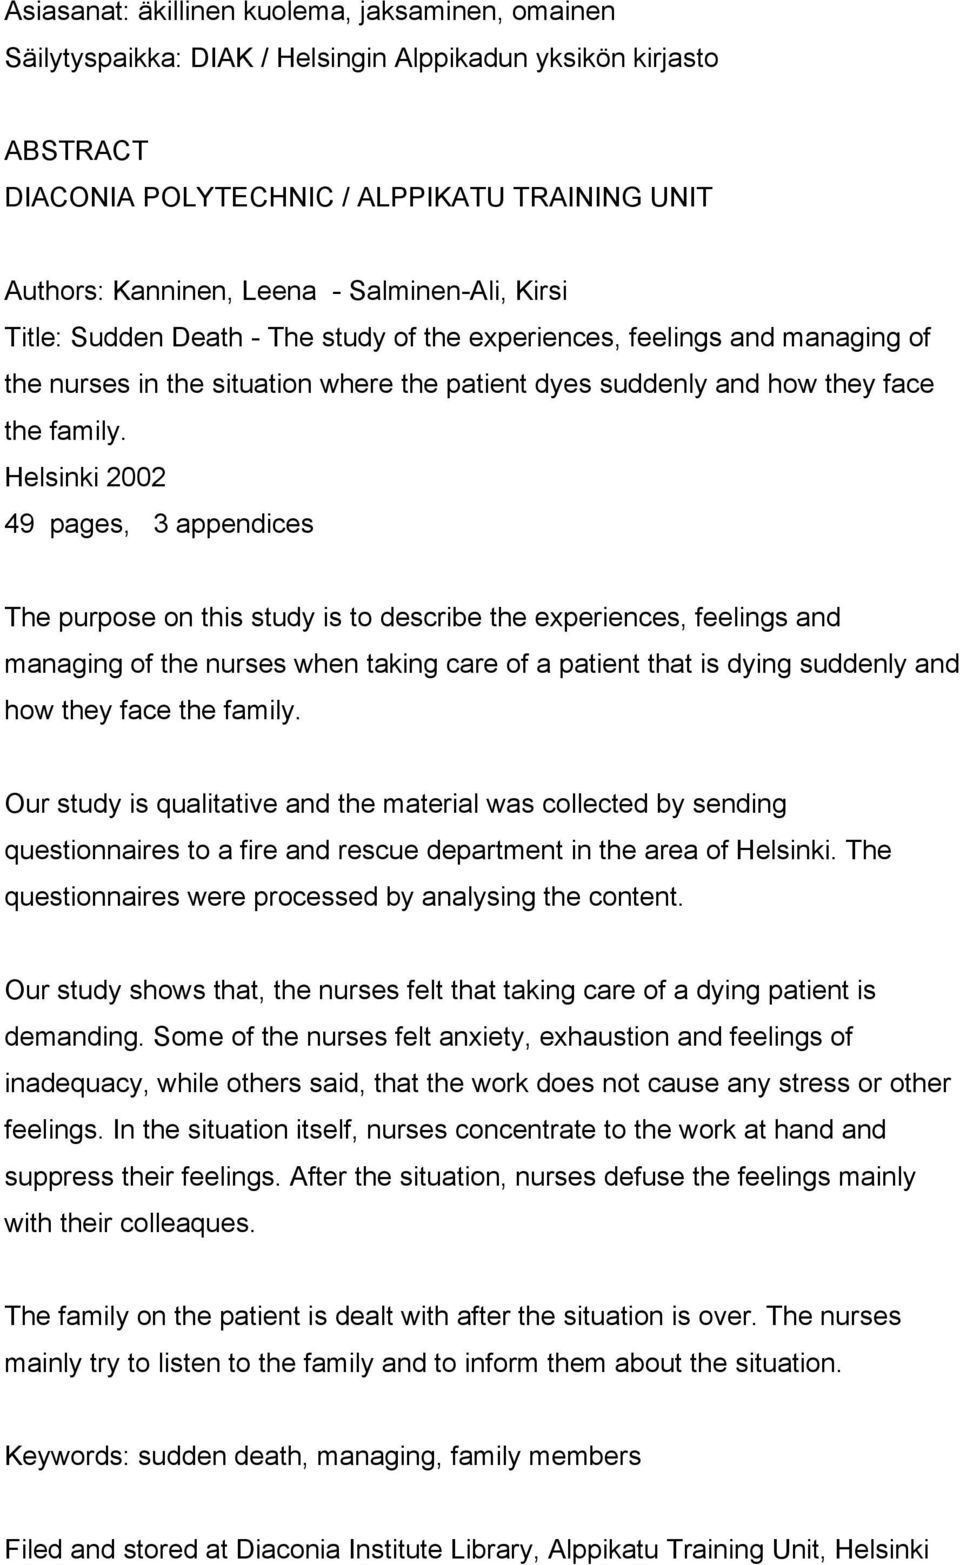 Helsinki 2002 49 pages, 3 appendices The purpose on this study is to describe the experiences, feelings and managing of the nurses when taking care of a patient that is dying suddenly and how they